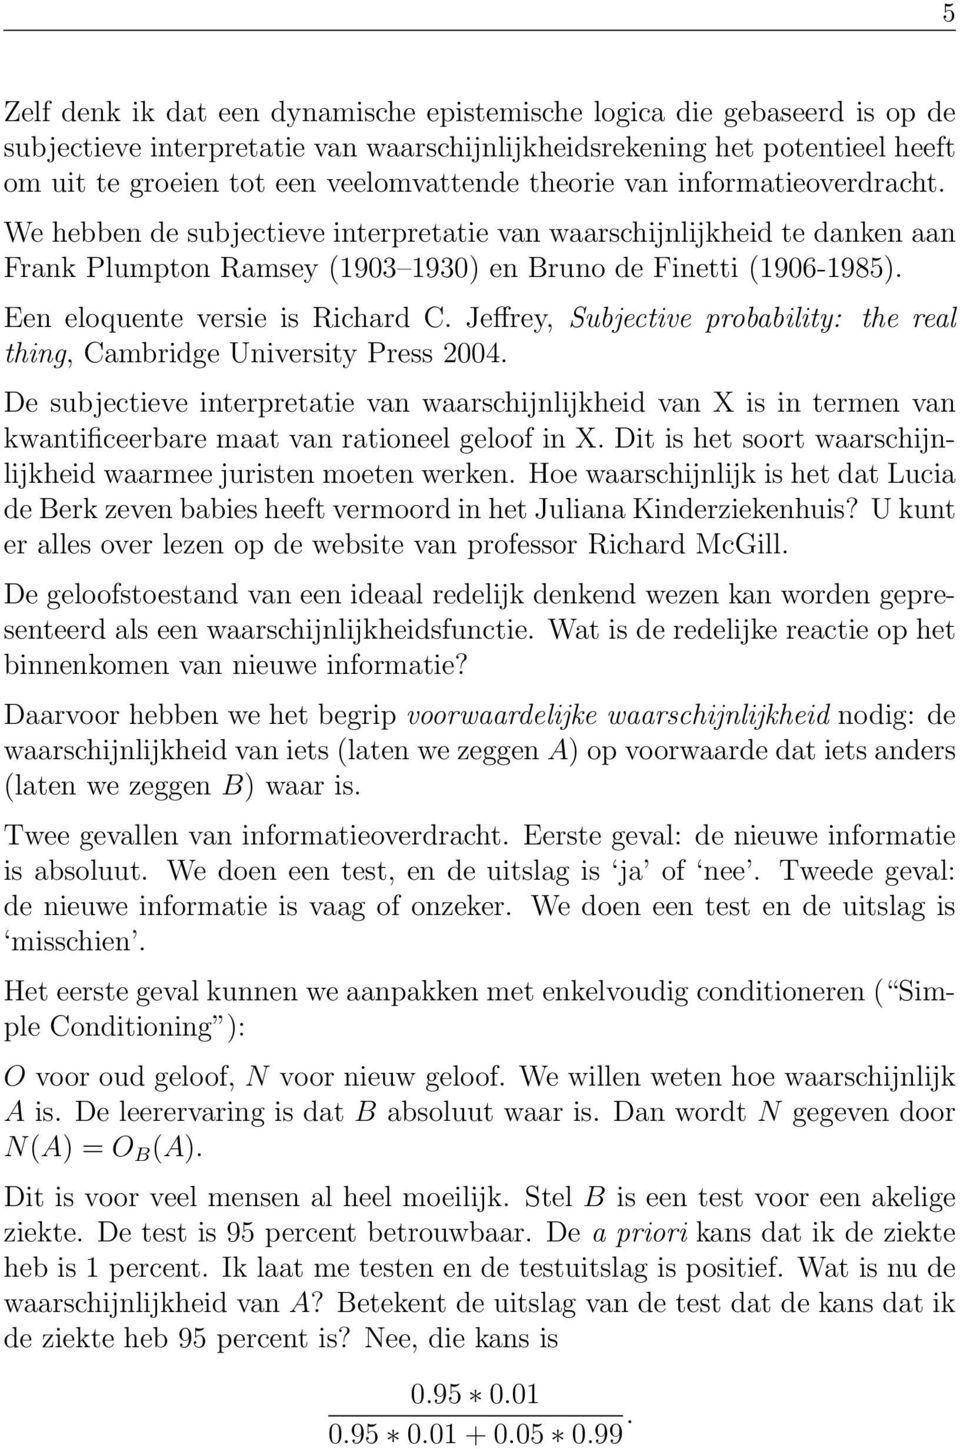 Een eloquente versie is Richard C. Jeffrey, Subjective probability: the real thing, Cambridge University Press 2004.